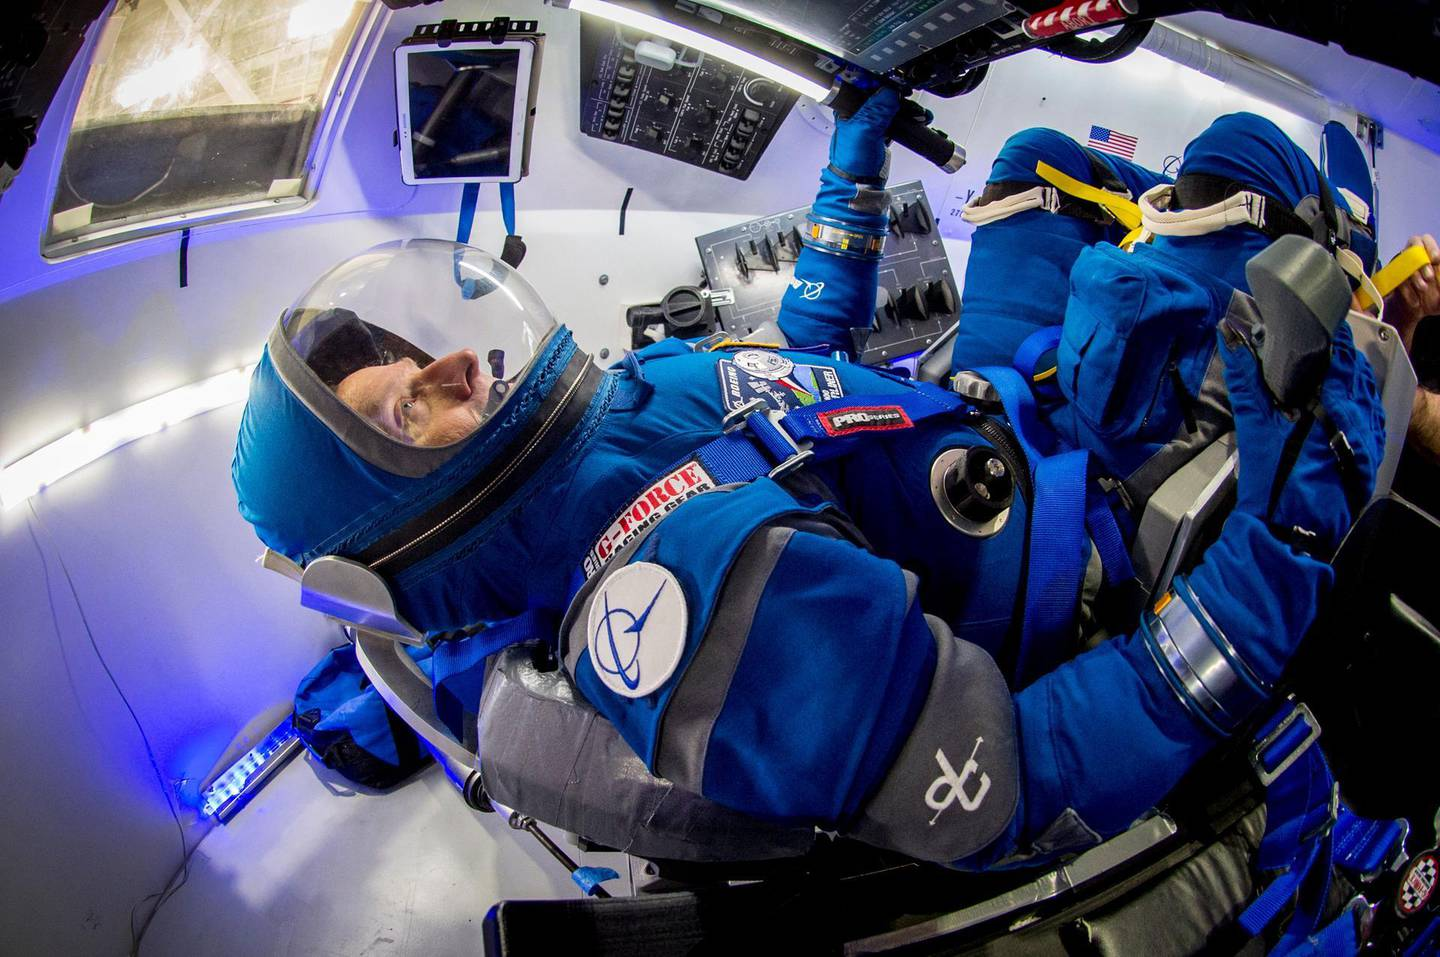 Chris Ferguson, Boeing director of crew and mission systems and a former astronaut, checks out the new, blue Starliner spacesuit in a mockup of the company's commercial crew spacecraft. Courtesy Boeing